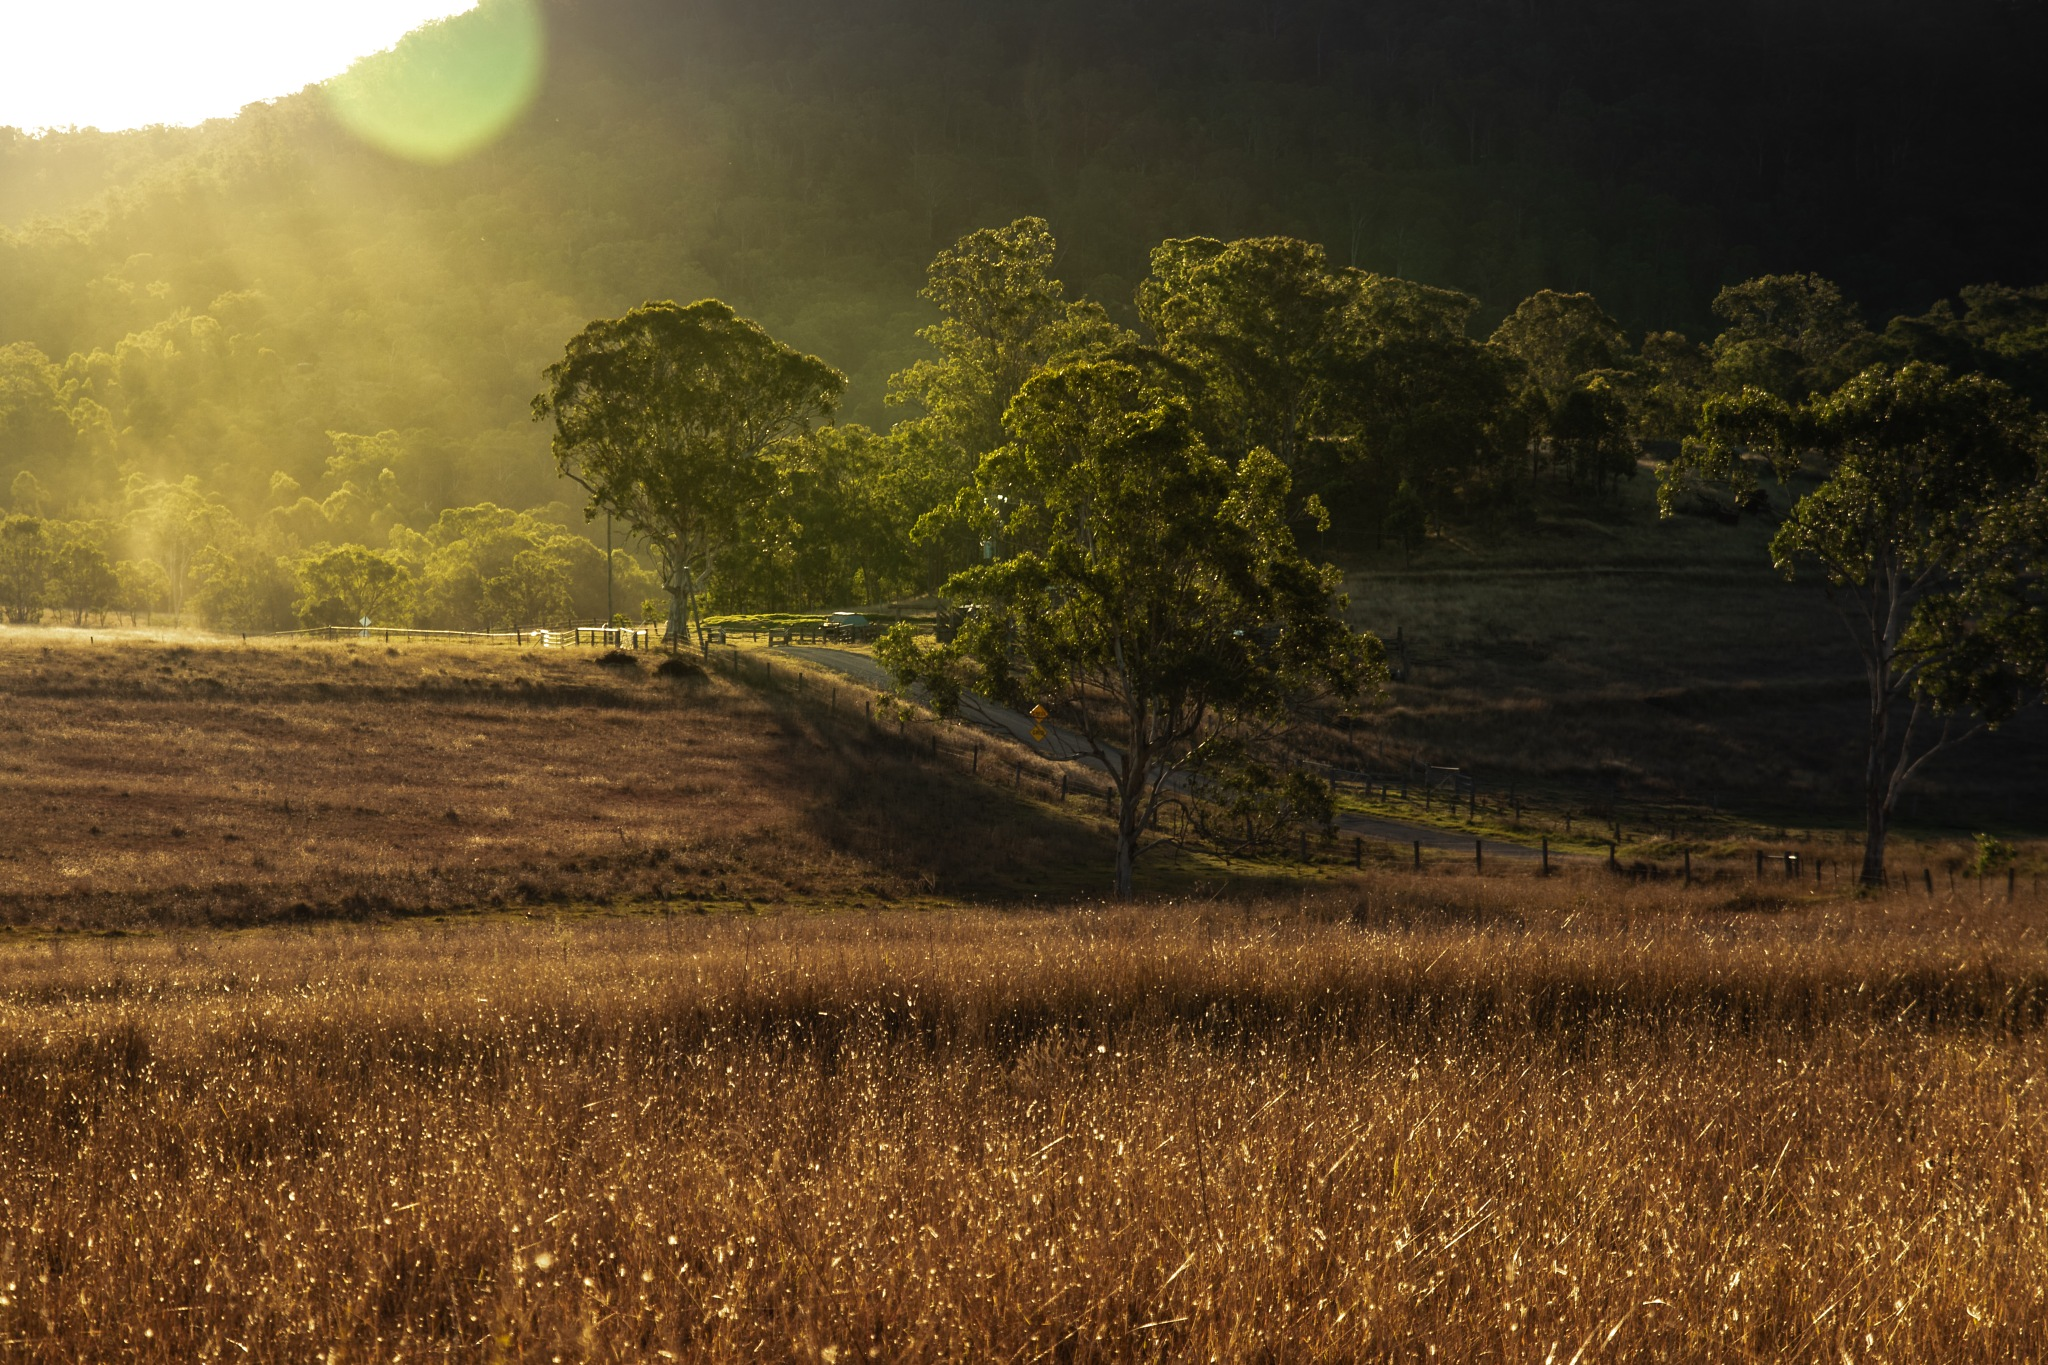 fieldsOfGold by Max Evans